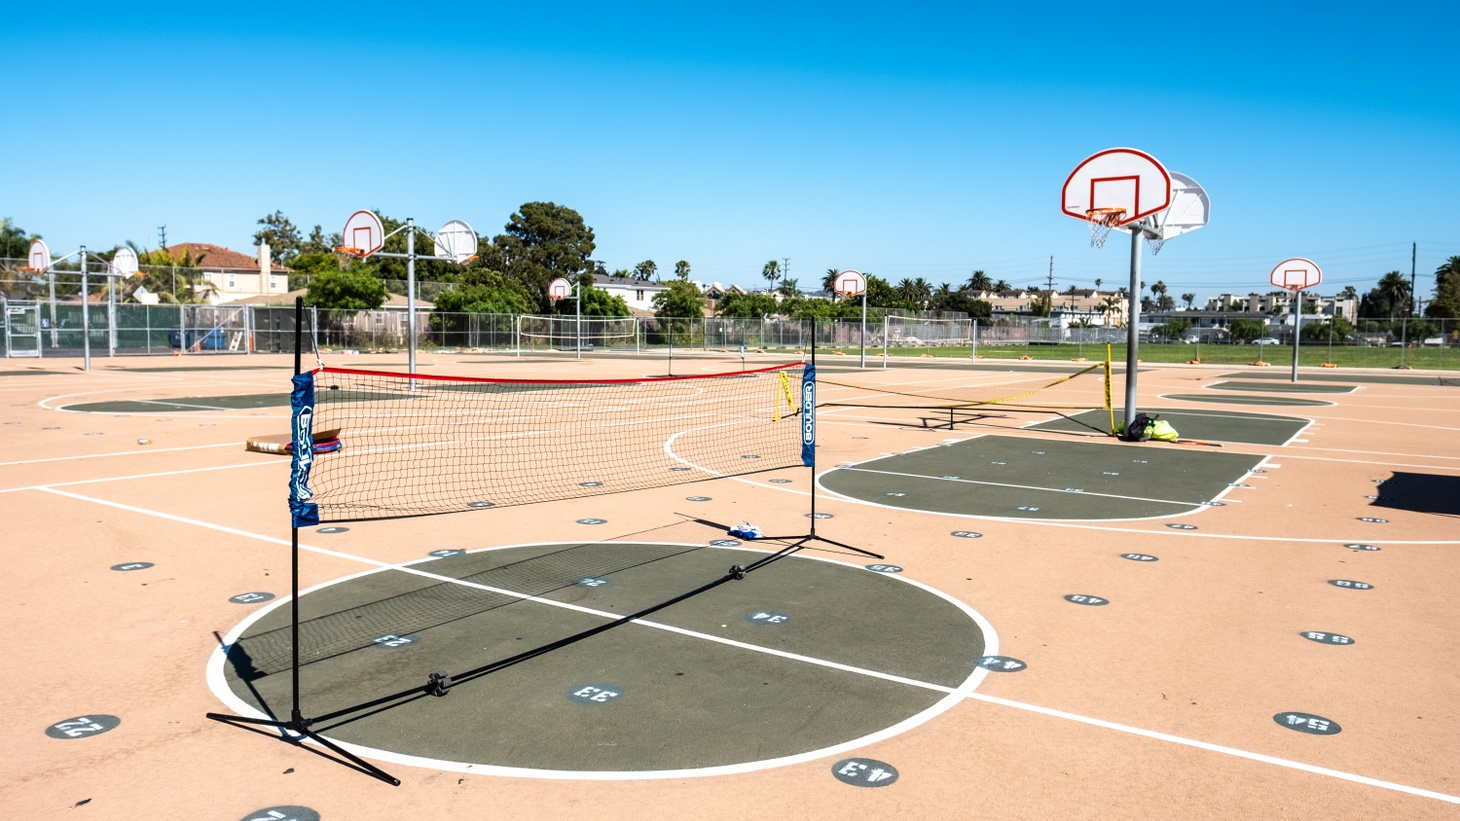 Badminton and basketball courts stay empty at Palms Middle School, Los Angeles.